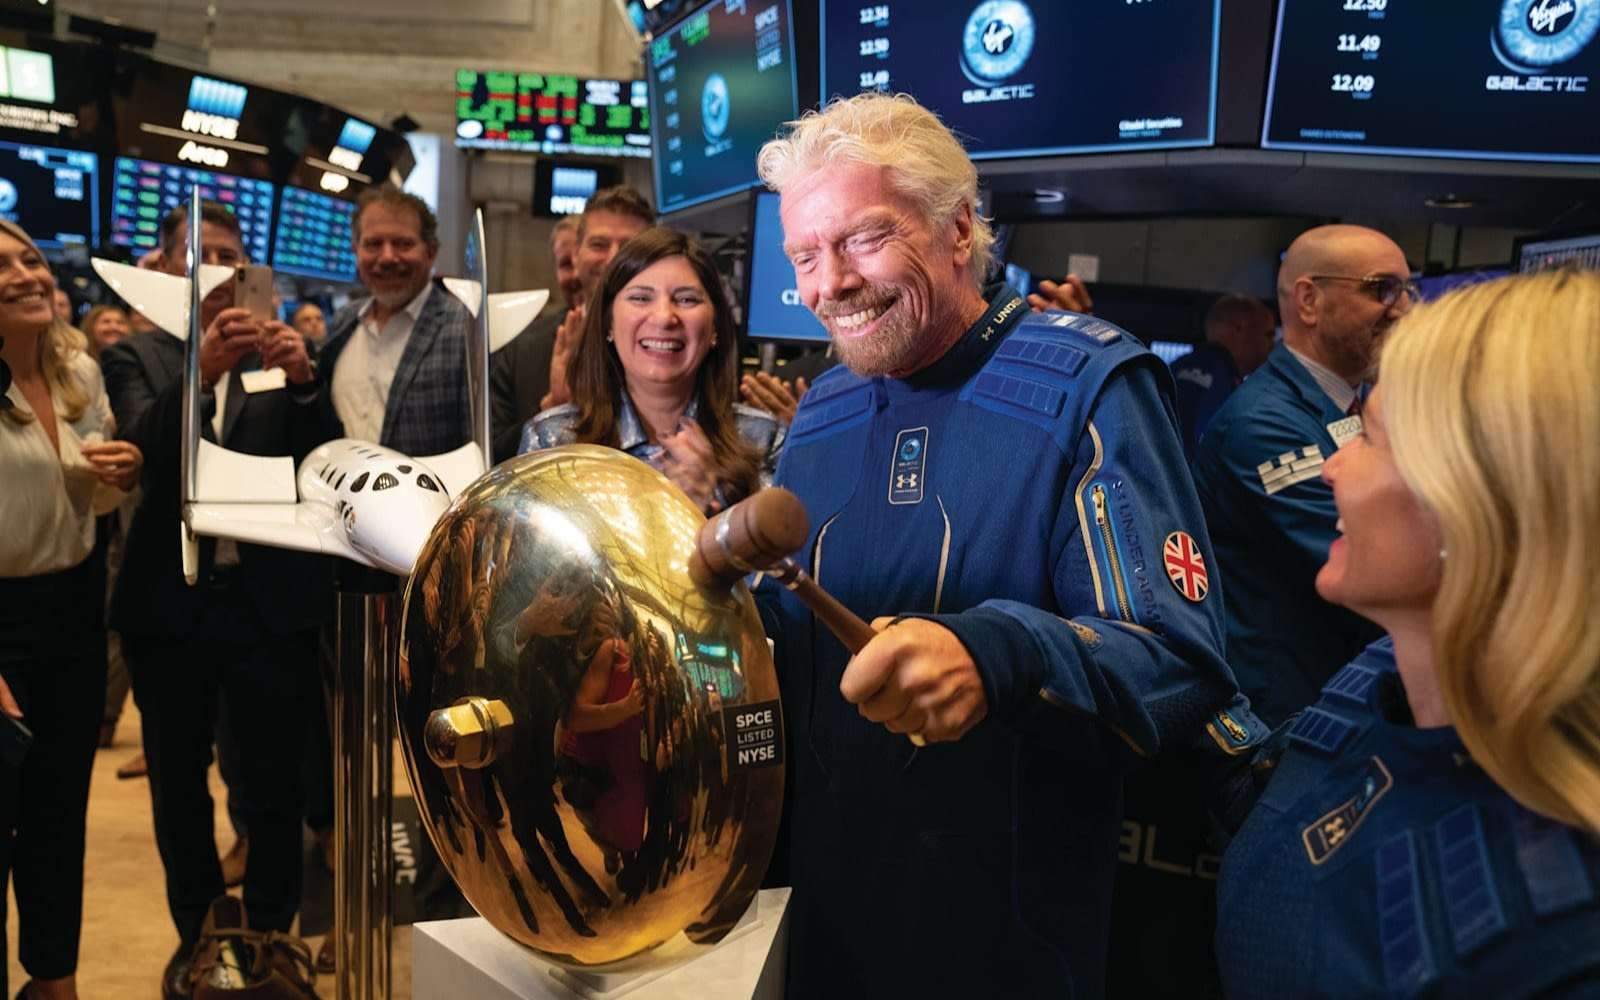 Richard Branson rings the bell at the New York Stock Exchange as Virgin Galactic is listed